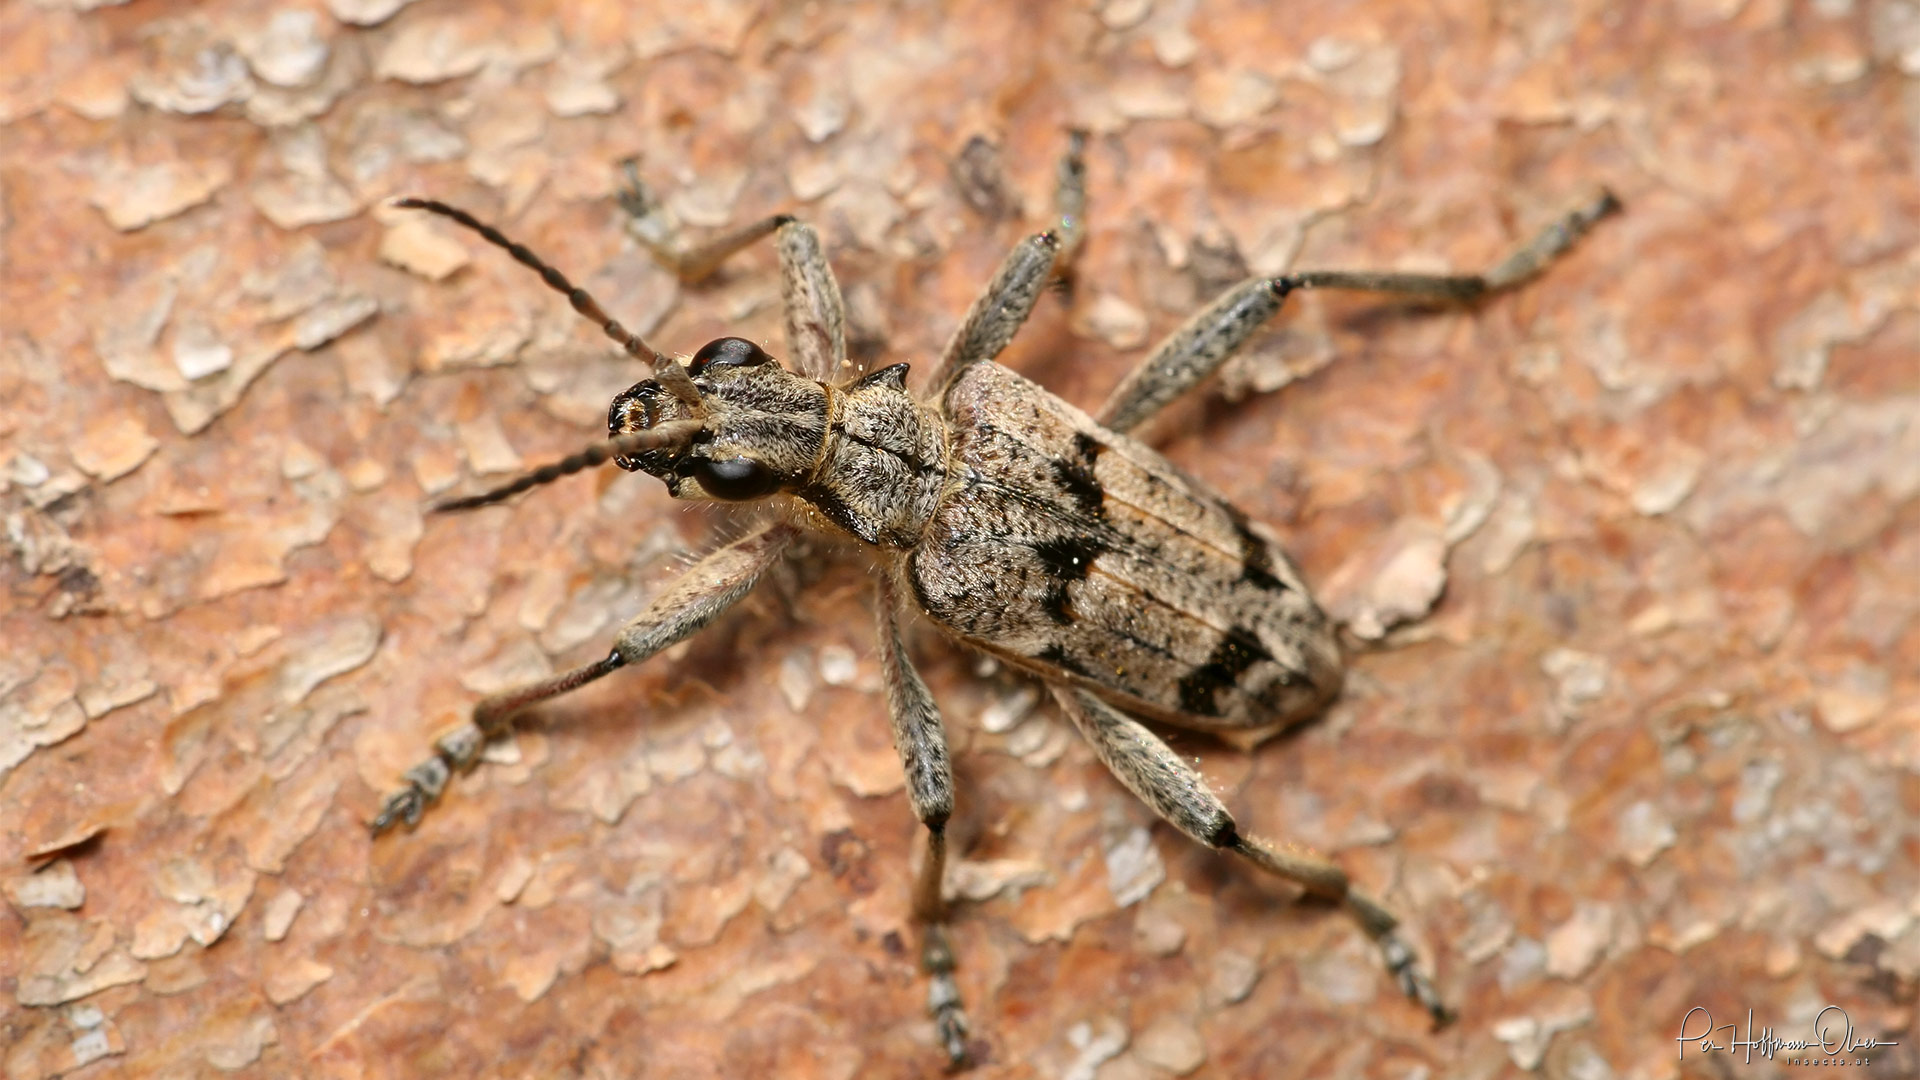 Rhagium (Rhagium) inquisitor